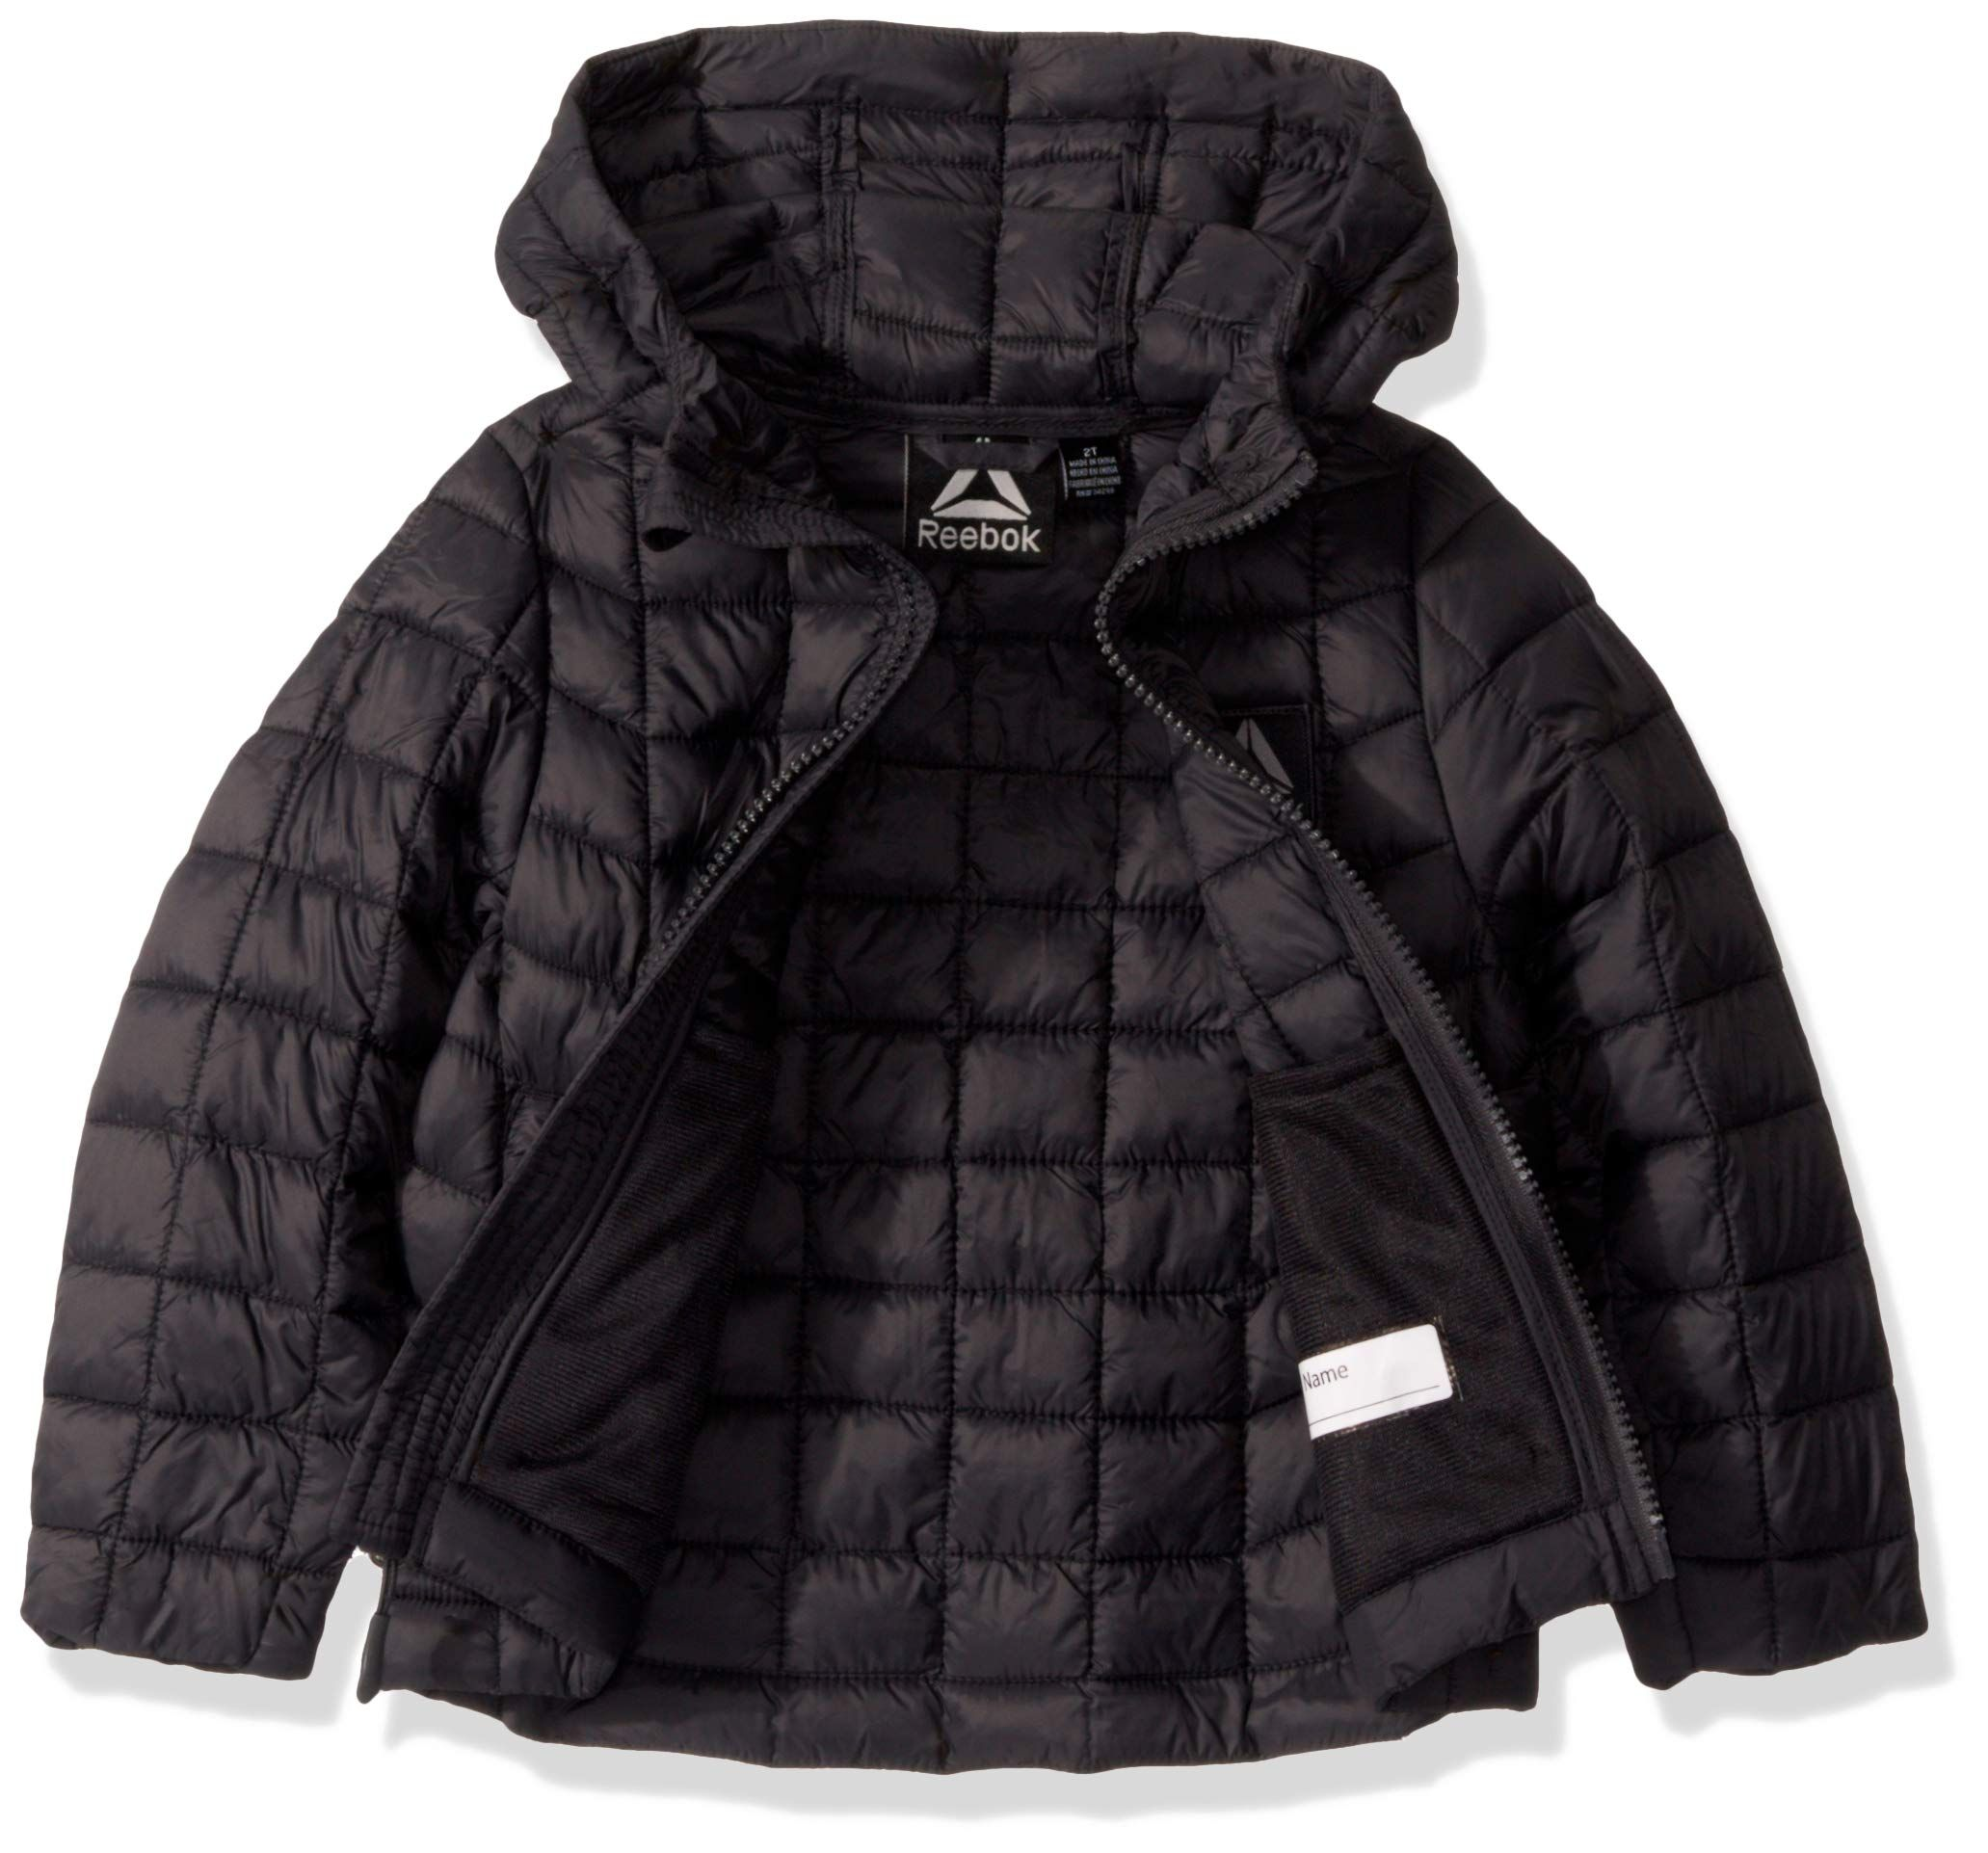 Reebok Boys Big Active Outerwear Jacket More Styles Available Hood And Quilted Charcoal 14 16 Want Additional Baby Girl Jackets Outerwear Jackets Boys [ 1923 x 2063 Pixel ]